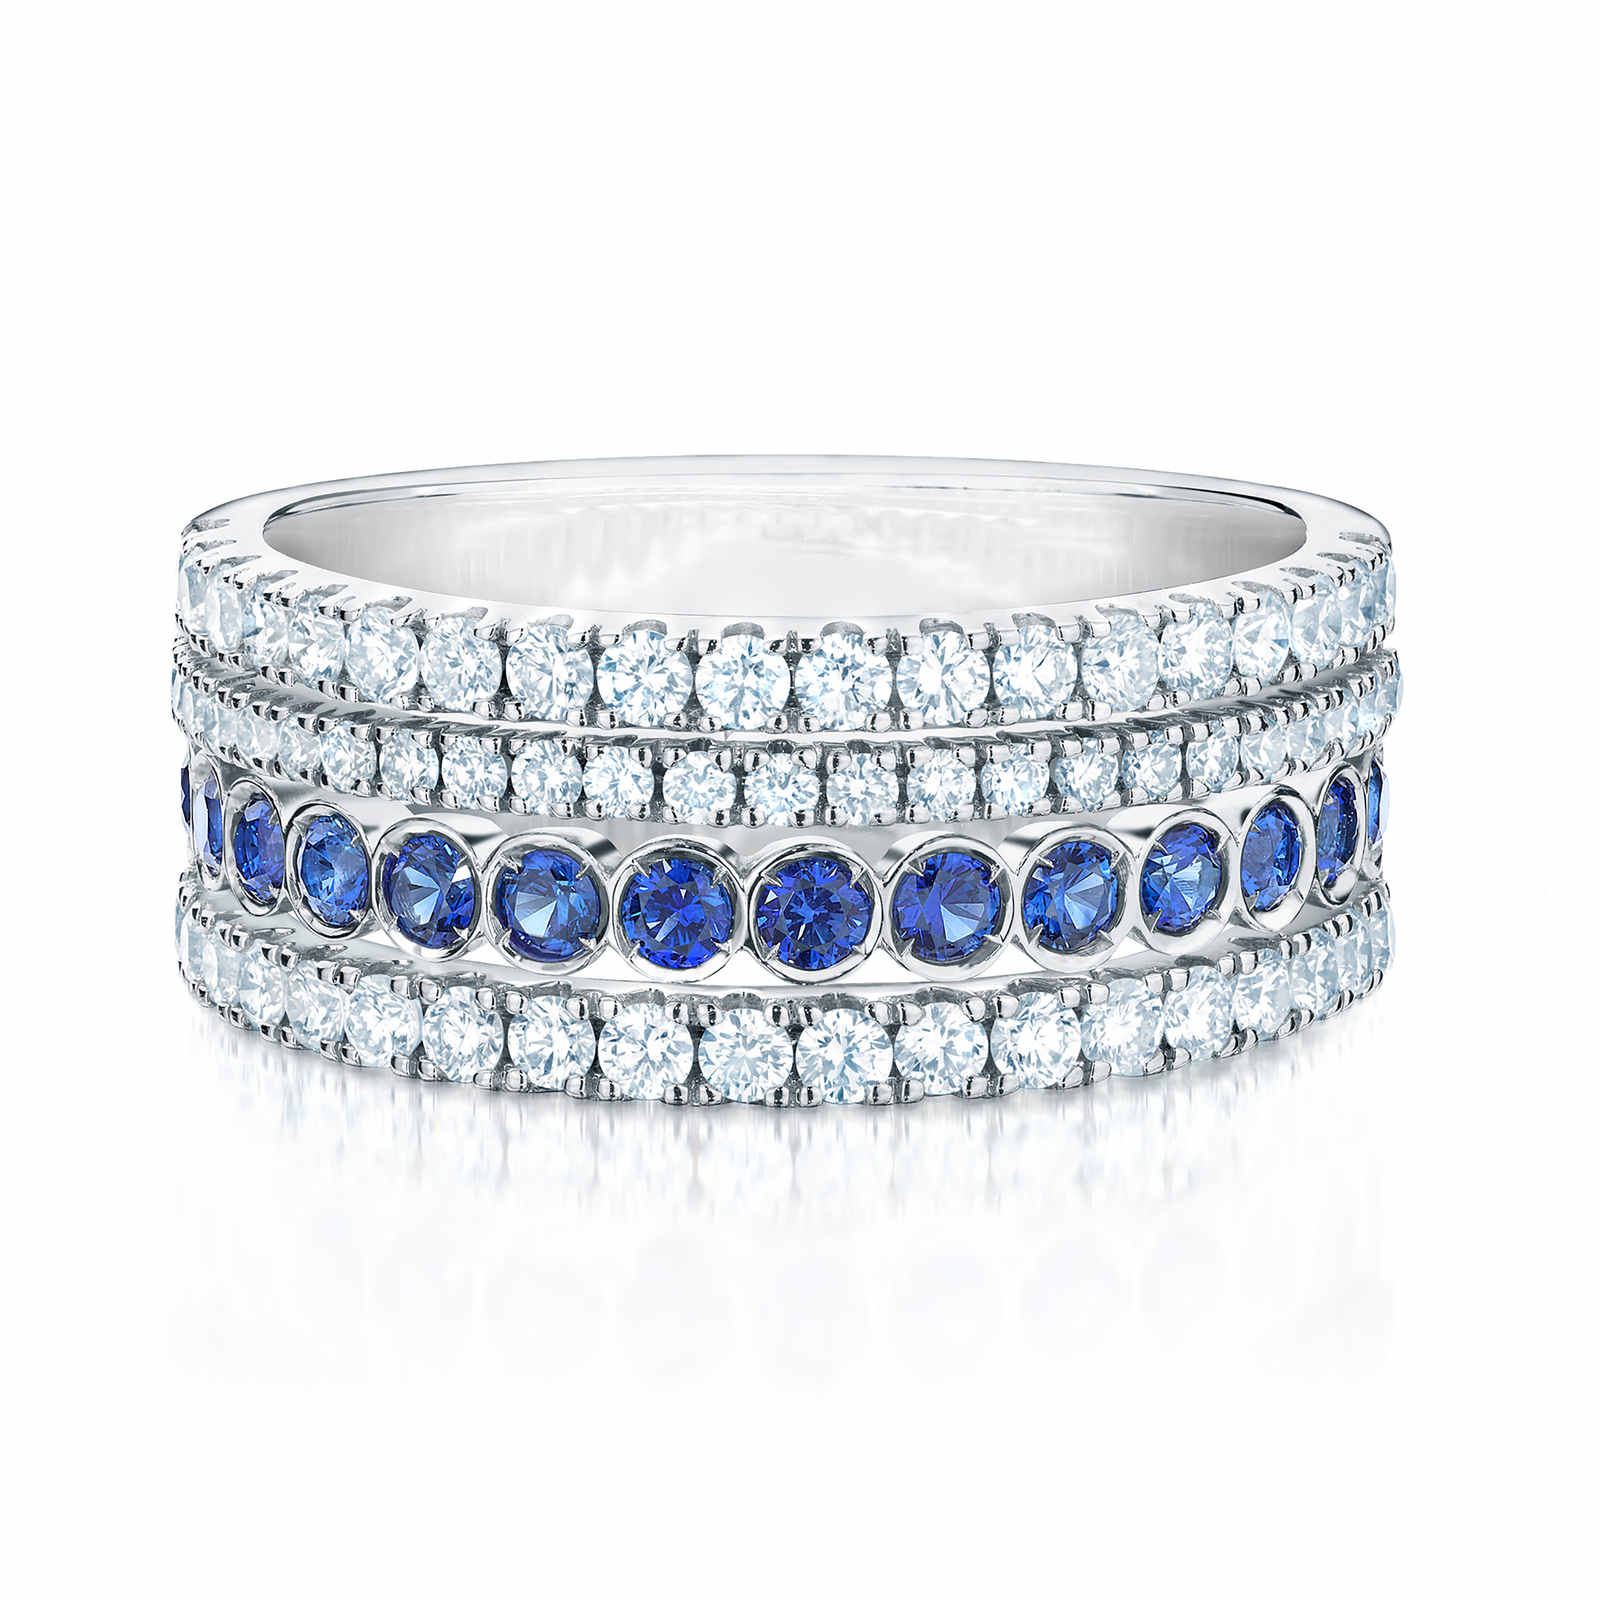 Birks Splash Diamond and Blue Sapphire Ring - Ring Size K